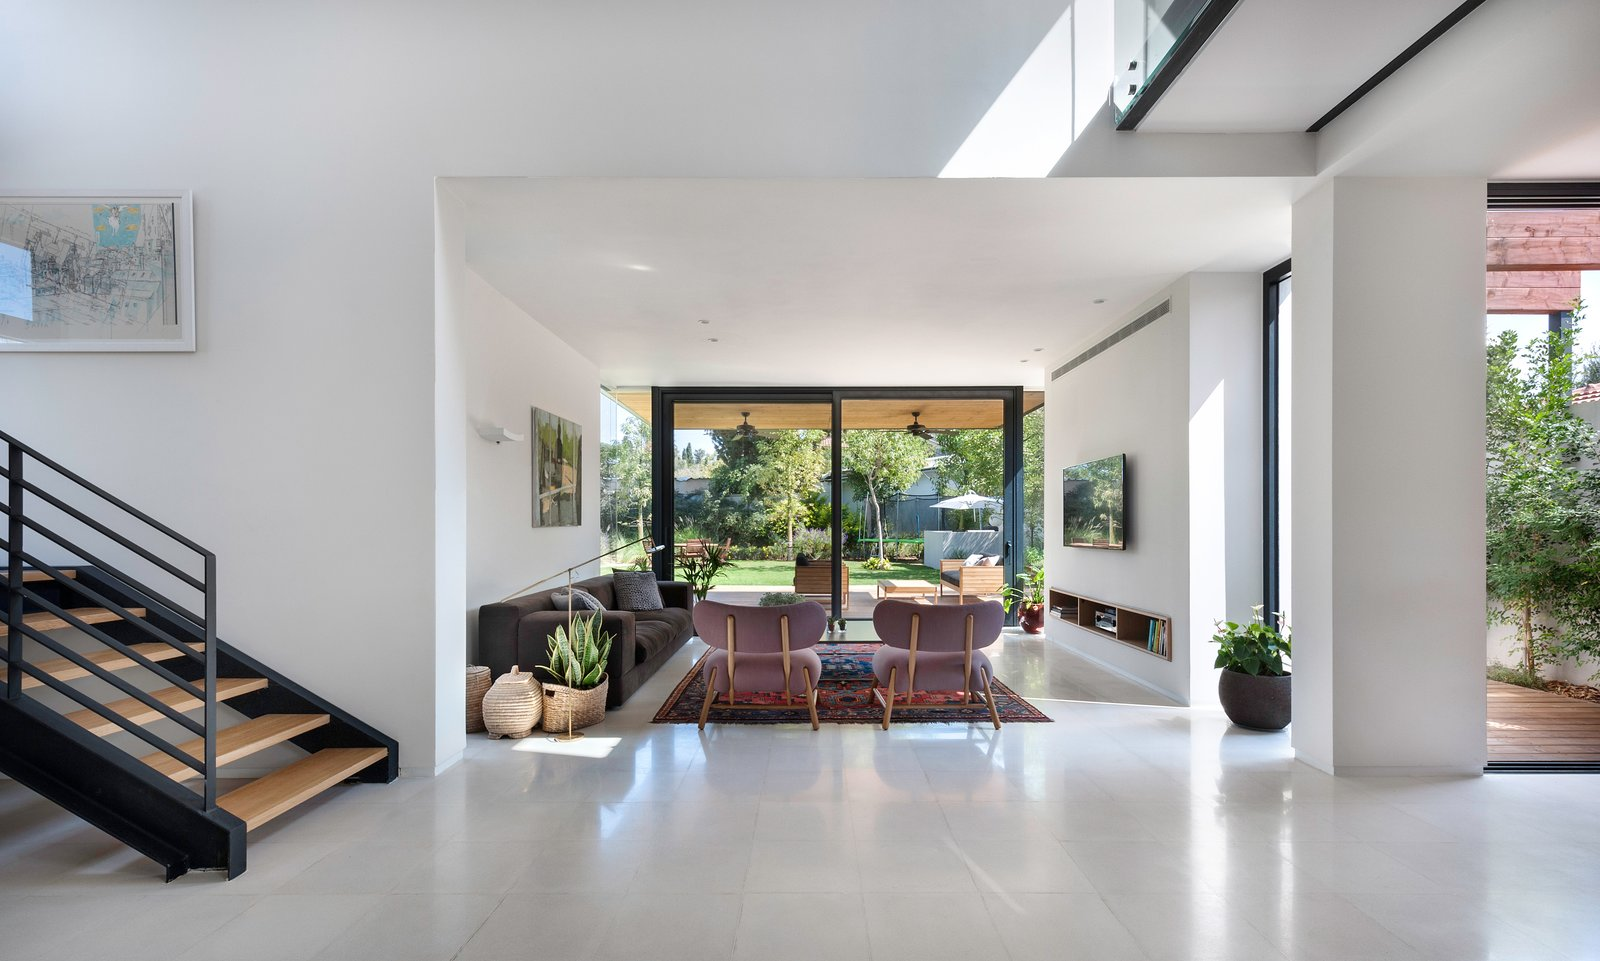 Living Room, Floor Lighting, Chair, Coffee Tables, Sofa, and Limestone Floor Ravit Dvir Architecture and Design  The House in Harutzim